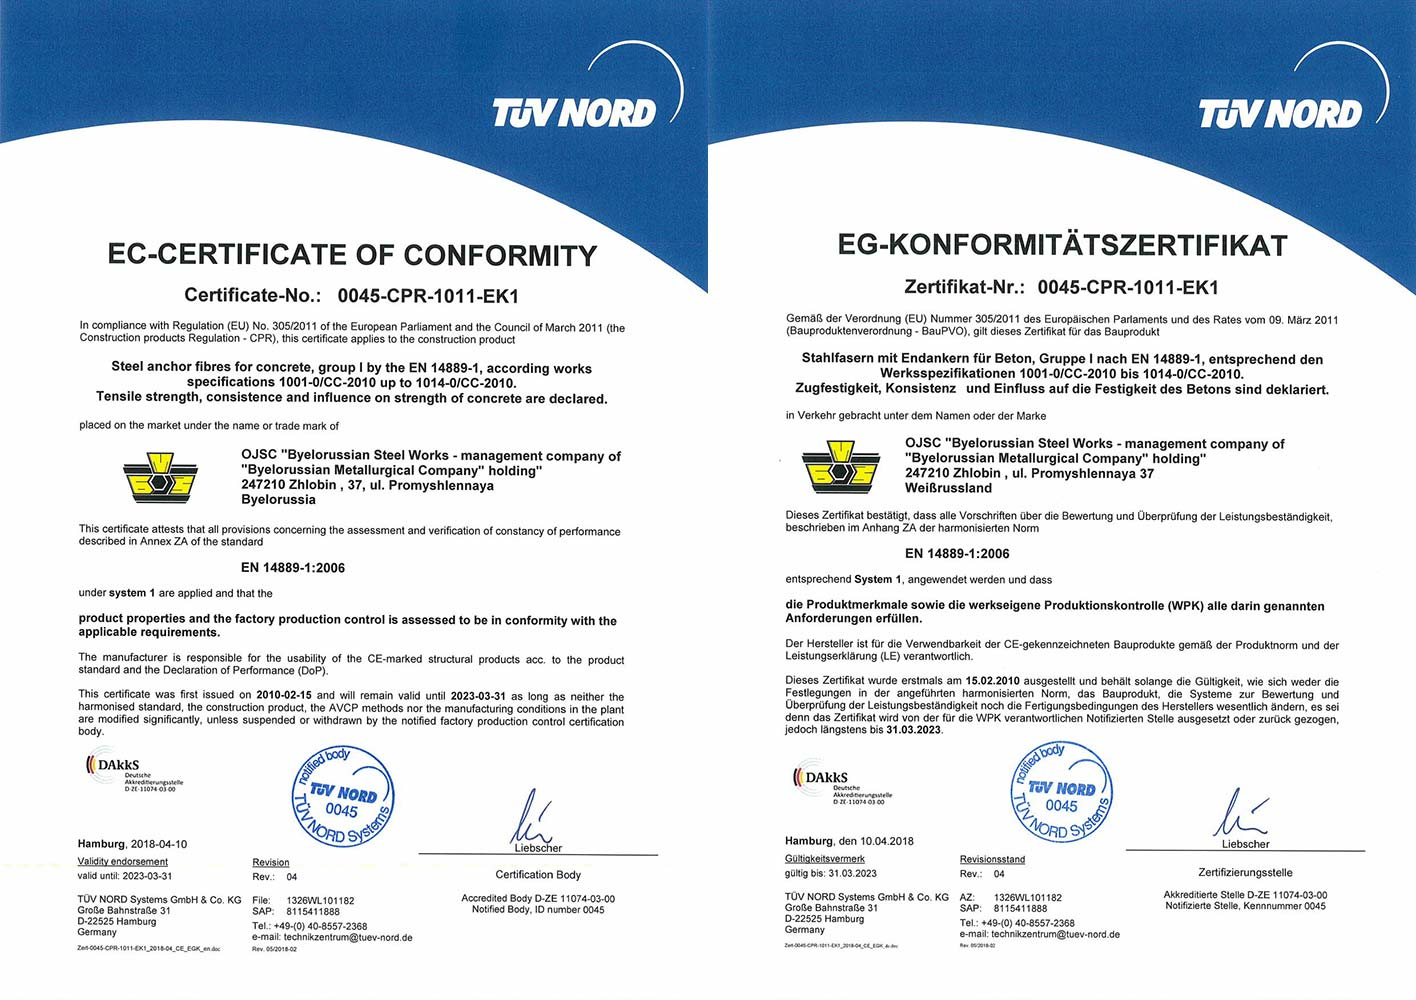 Certificate of TUV NORD Systems (Germany) №  0045-CPR-1011-EK1 for production of  steel anchor fiber  for concrete reinforcement according to the requirements of EN 14889-1:2006 and European building regulations 305/2011 ( right to apply CE-mark).